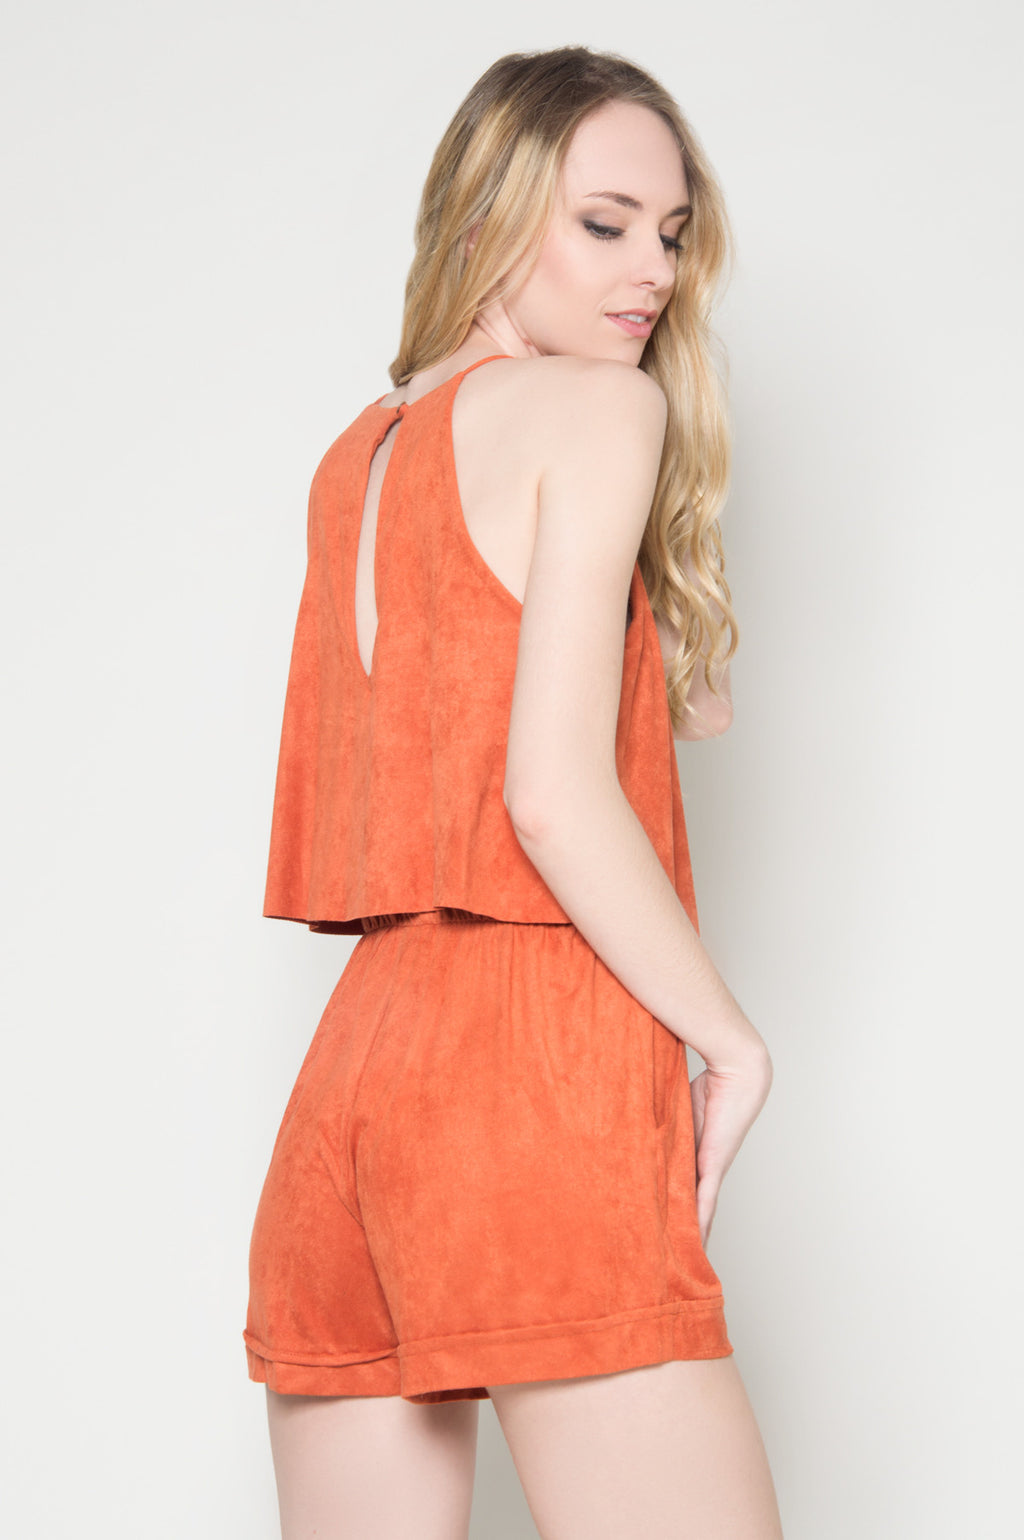 Foxy faux suede double layer romper fancy rompers cute rompers for summer